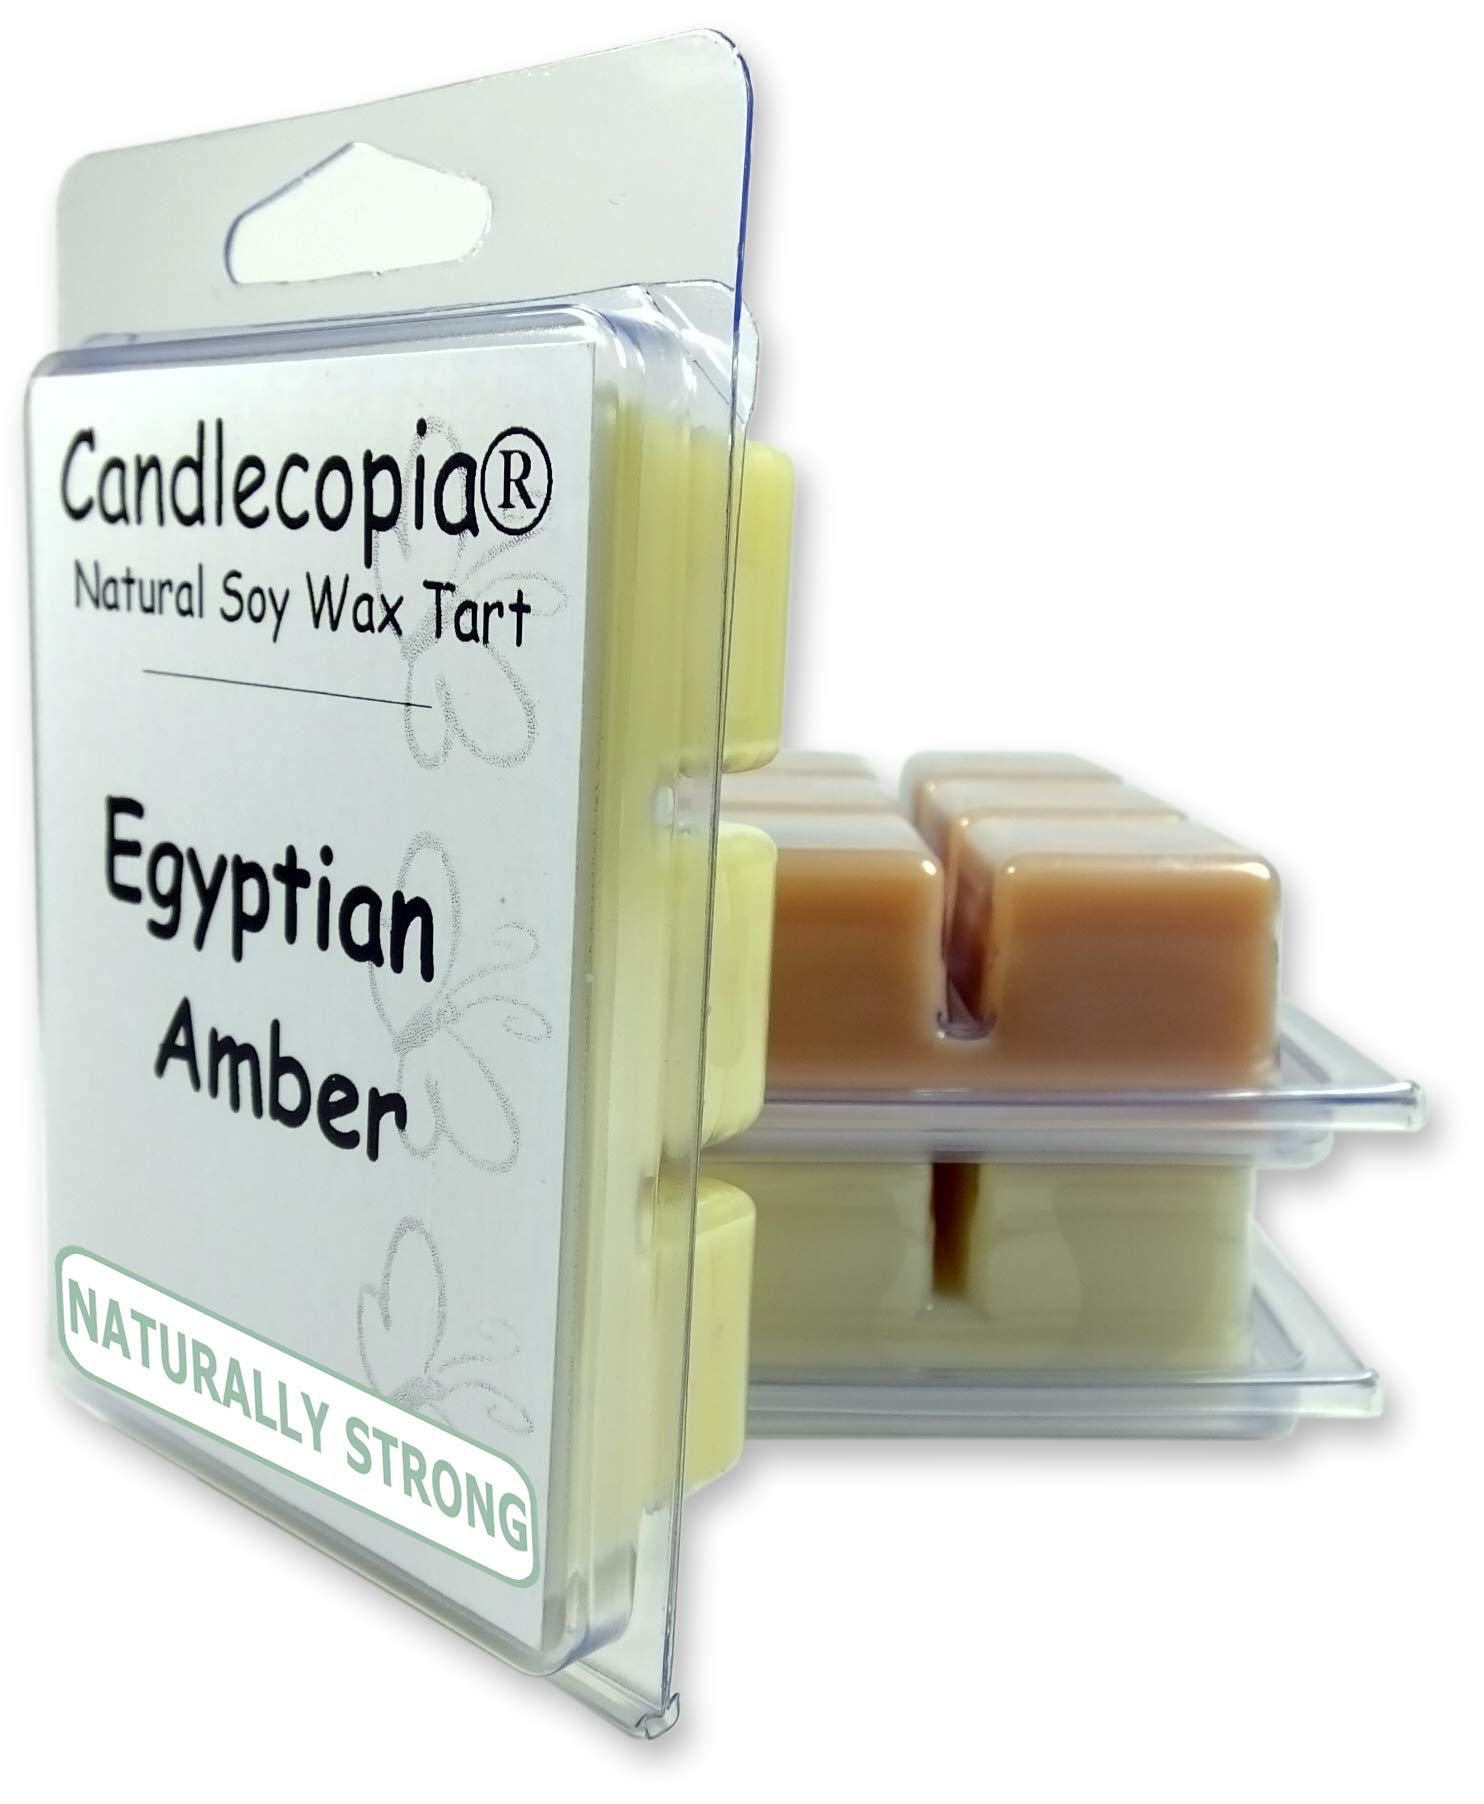 Candlecopia Sweet Patchouli, Indian Sandalwood and Egyptian Amber Strongly Scented Hand Poured Vegan Wax Melts, 18 Scented Wax Cubes, 9.6 Ounces in 3 x 6-Packs